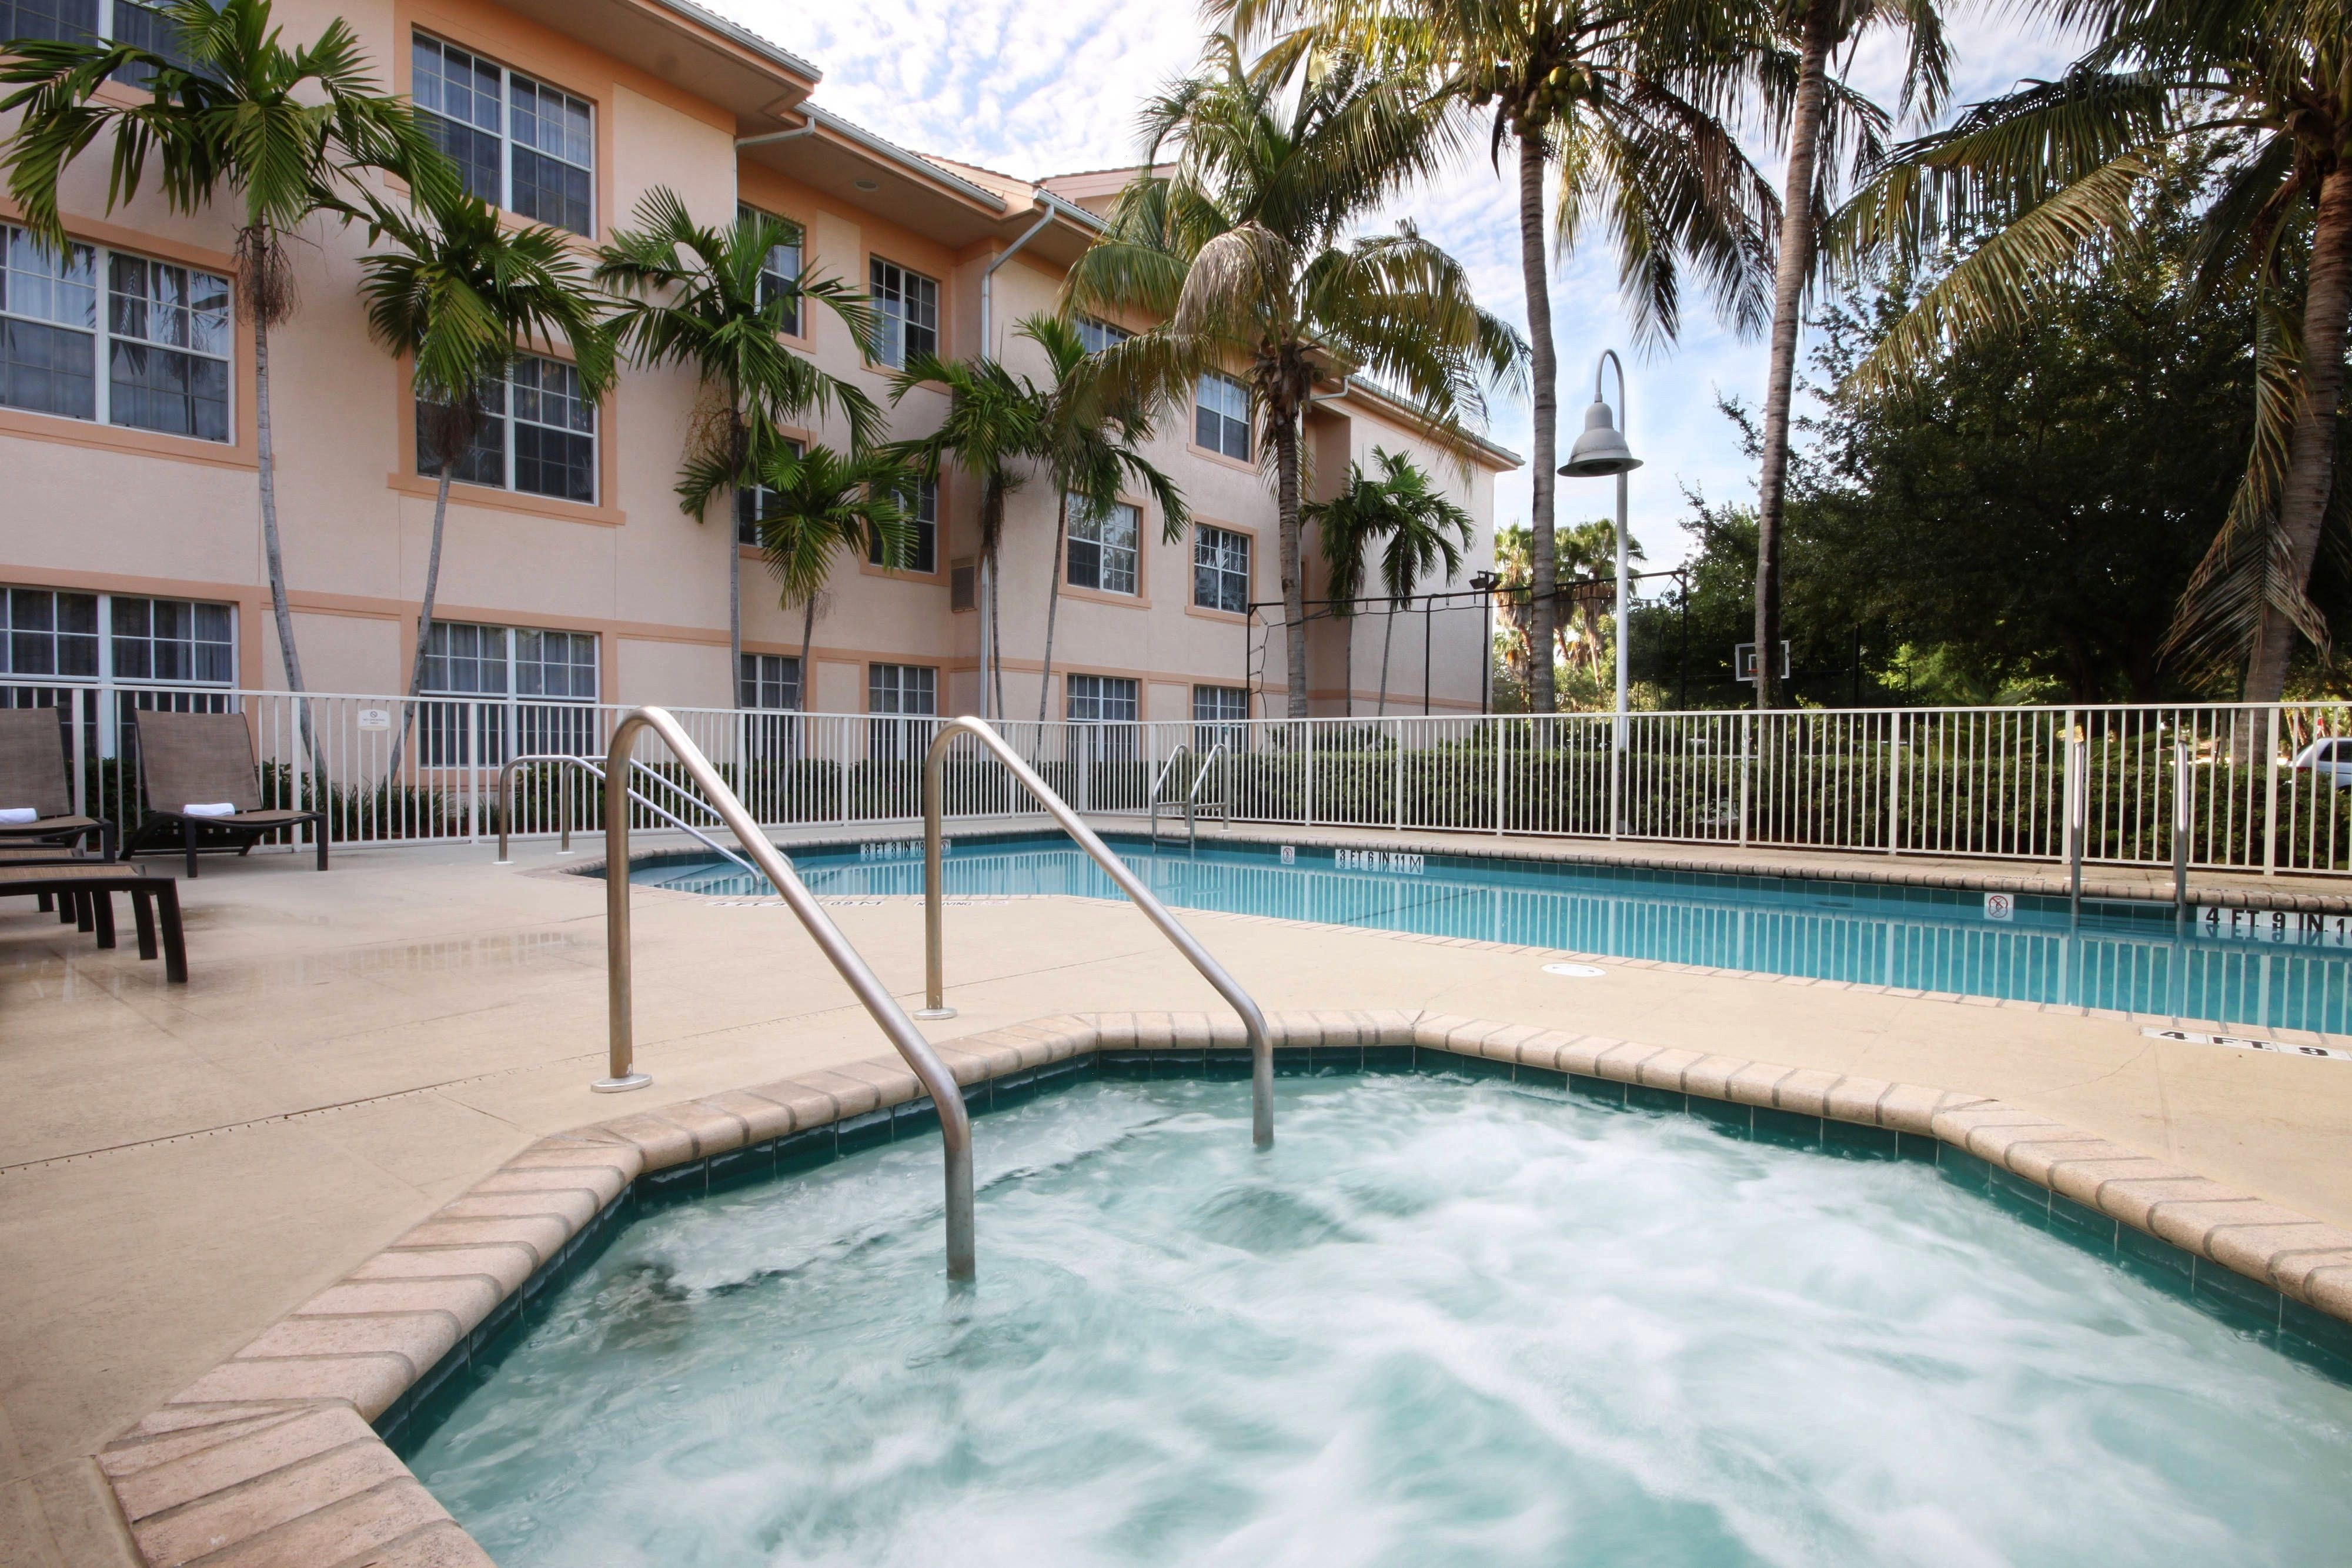 Residence Inn West Palm Beach Outdoor Whirlpoolwhirlpool Residence Inn West Palm Beach Outdoor Whirlpool Vacation House in New Smyrna Beach Vacation Hotel in Holmes Beach...